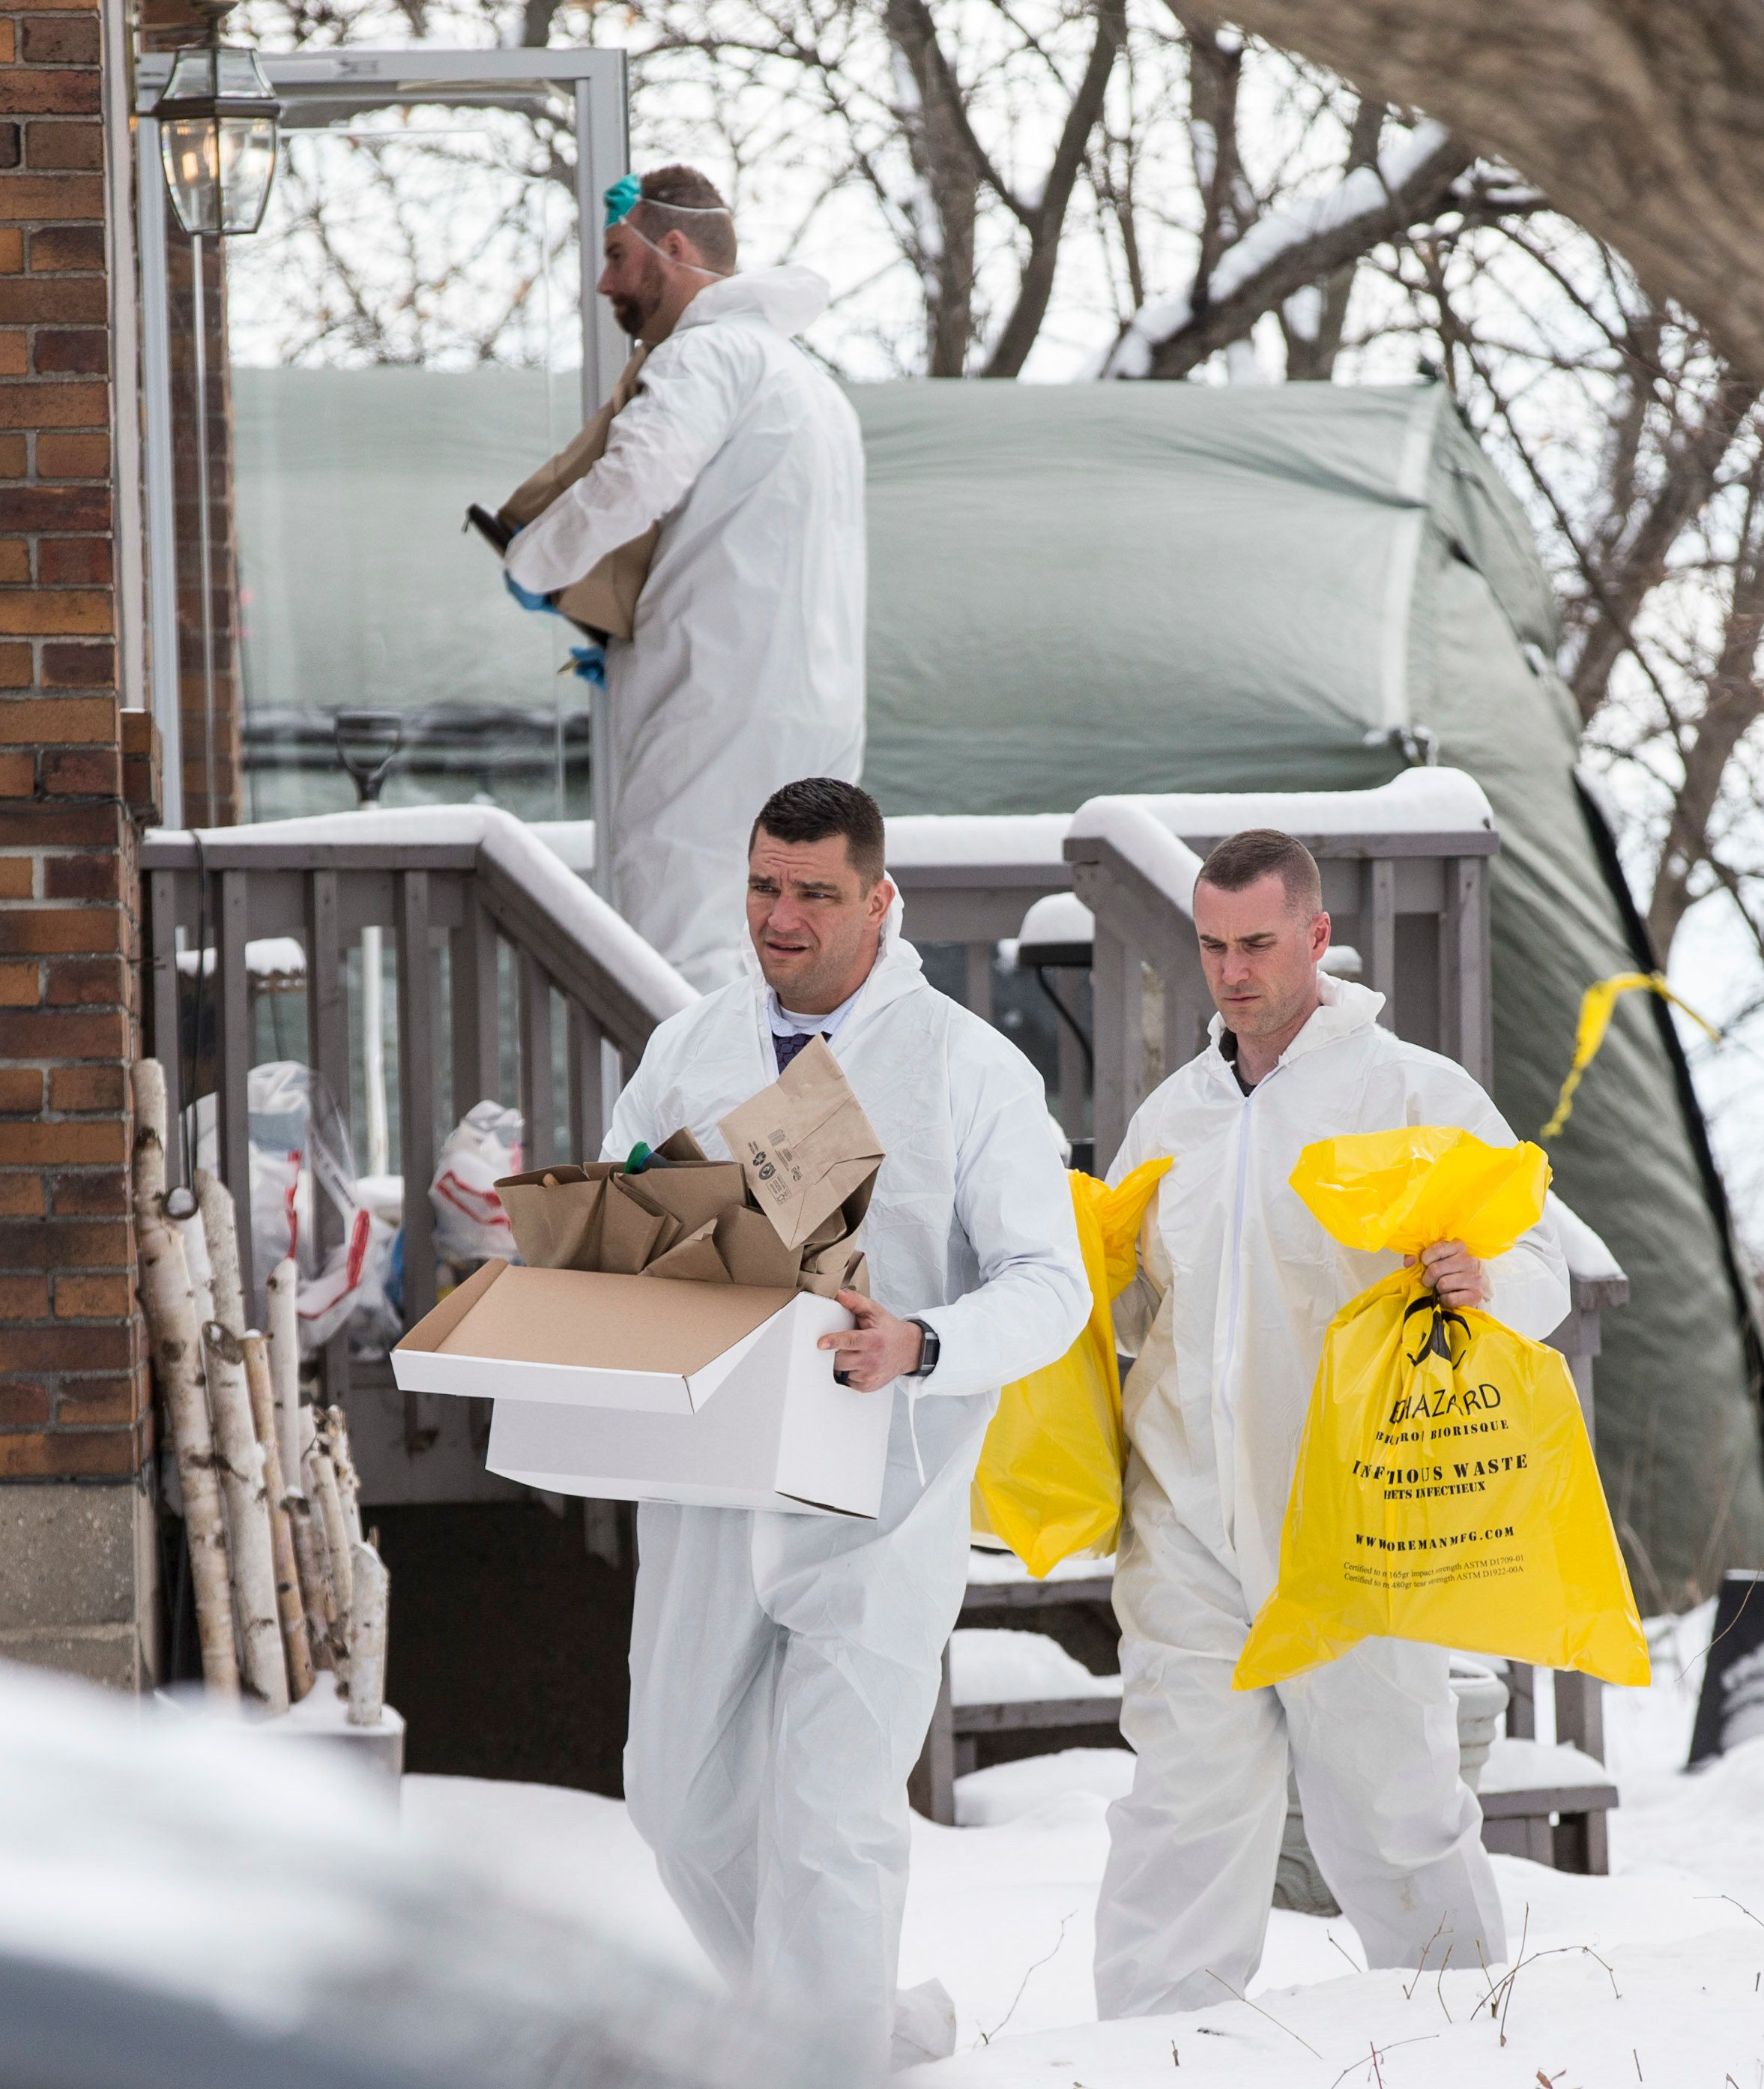 TORONTO, ON - FEBRUARY 8  - Forensic investiagtors remove evidence from home at 57 Mallory Cresc., Toronto. Planters containing body parts linked to accused serial killer Bruce McArthur have been previously removed from the property. February 8, 2018.        (Bernard Weil/Toronto Star via Getty Images)